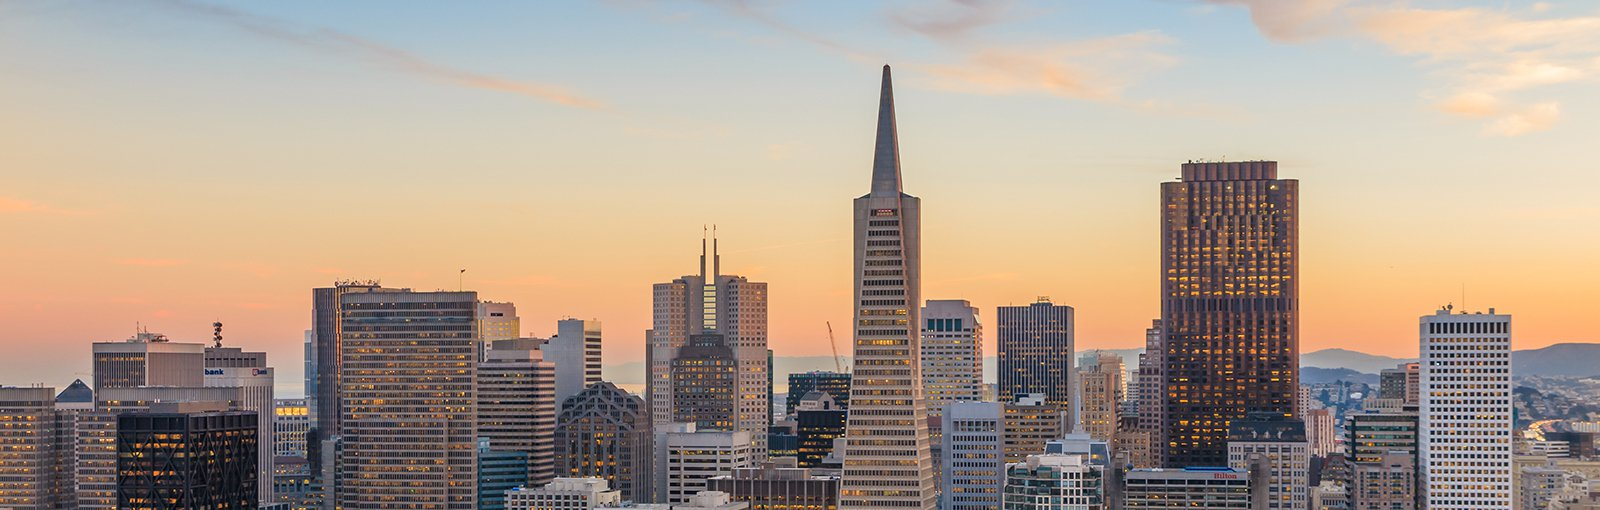 San Francisco Data Centres & Colocation